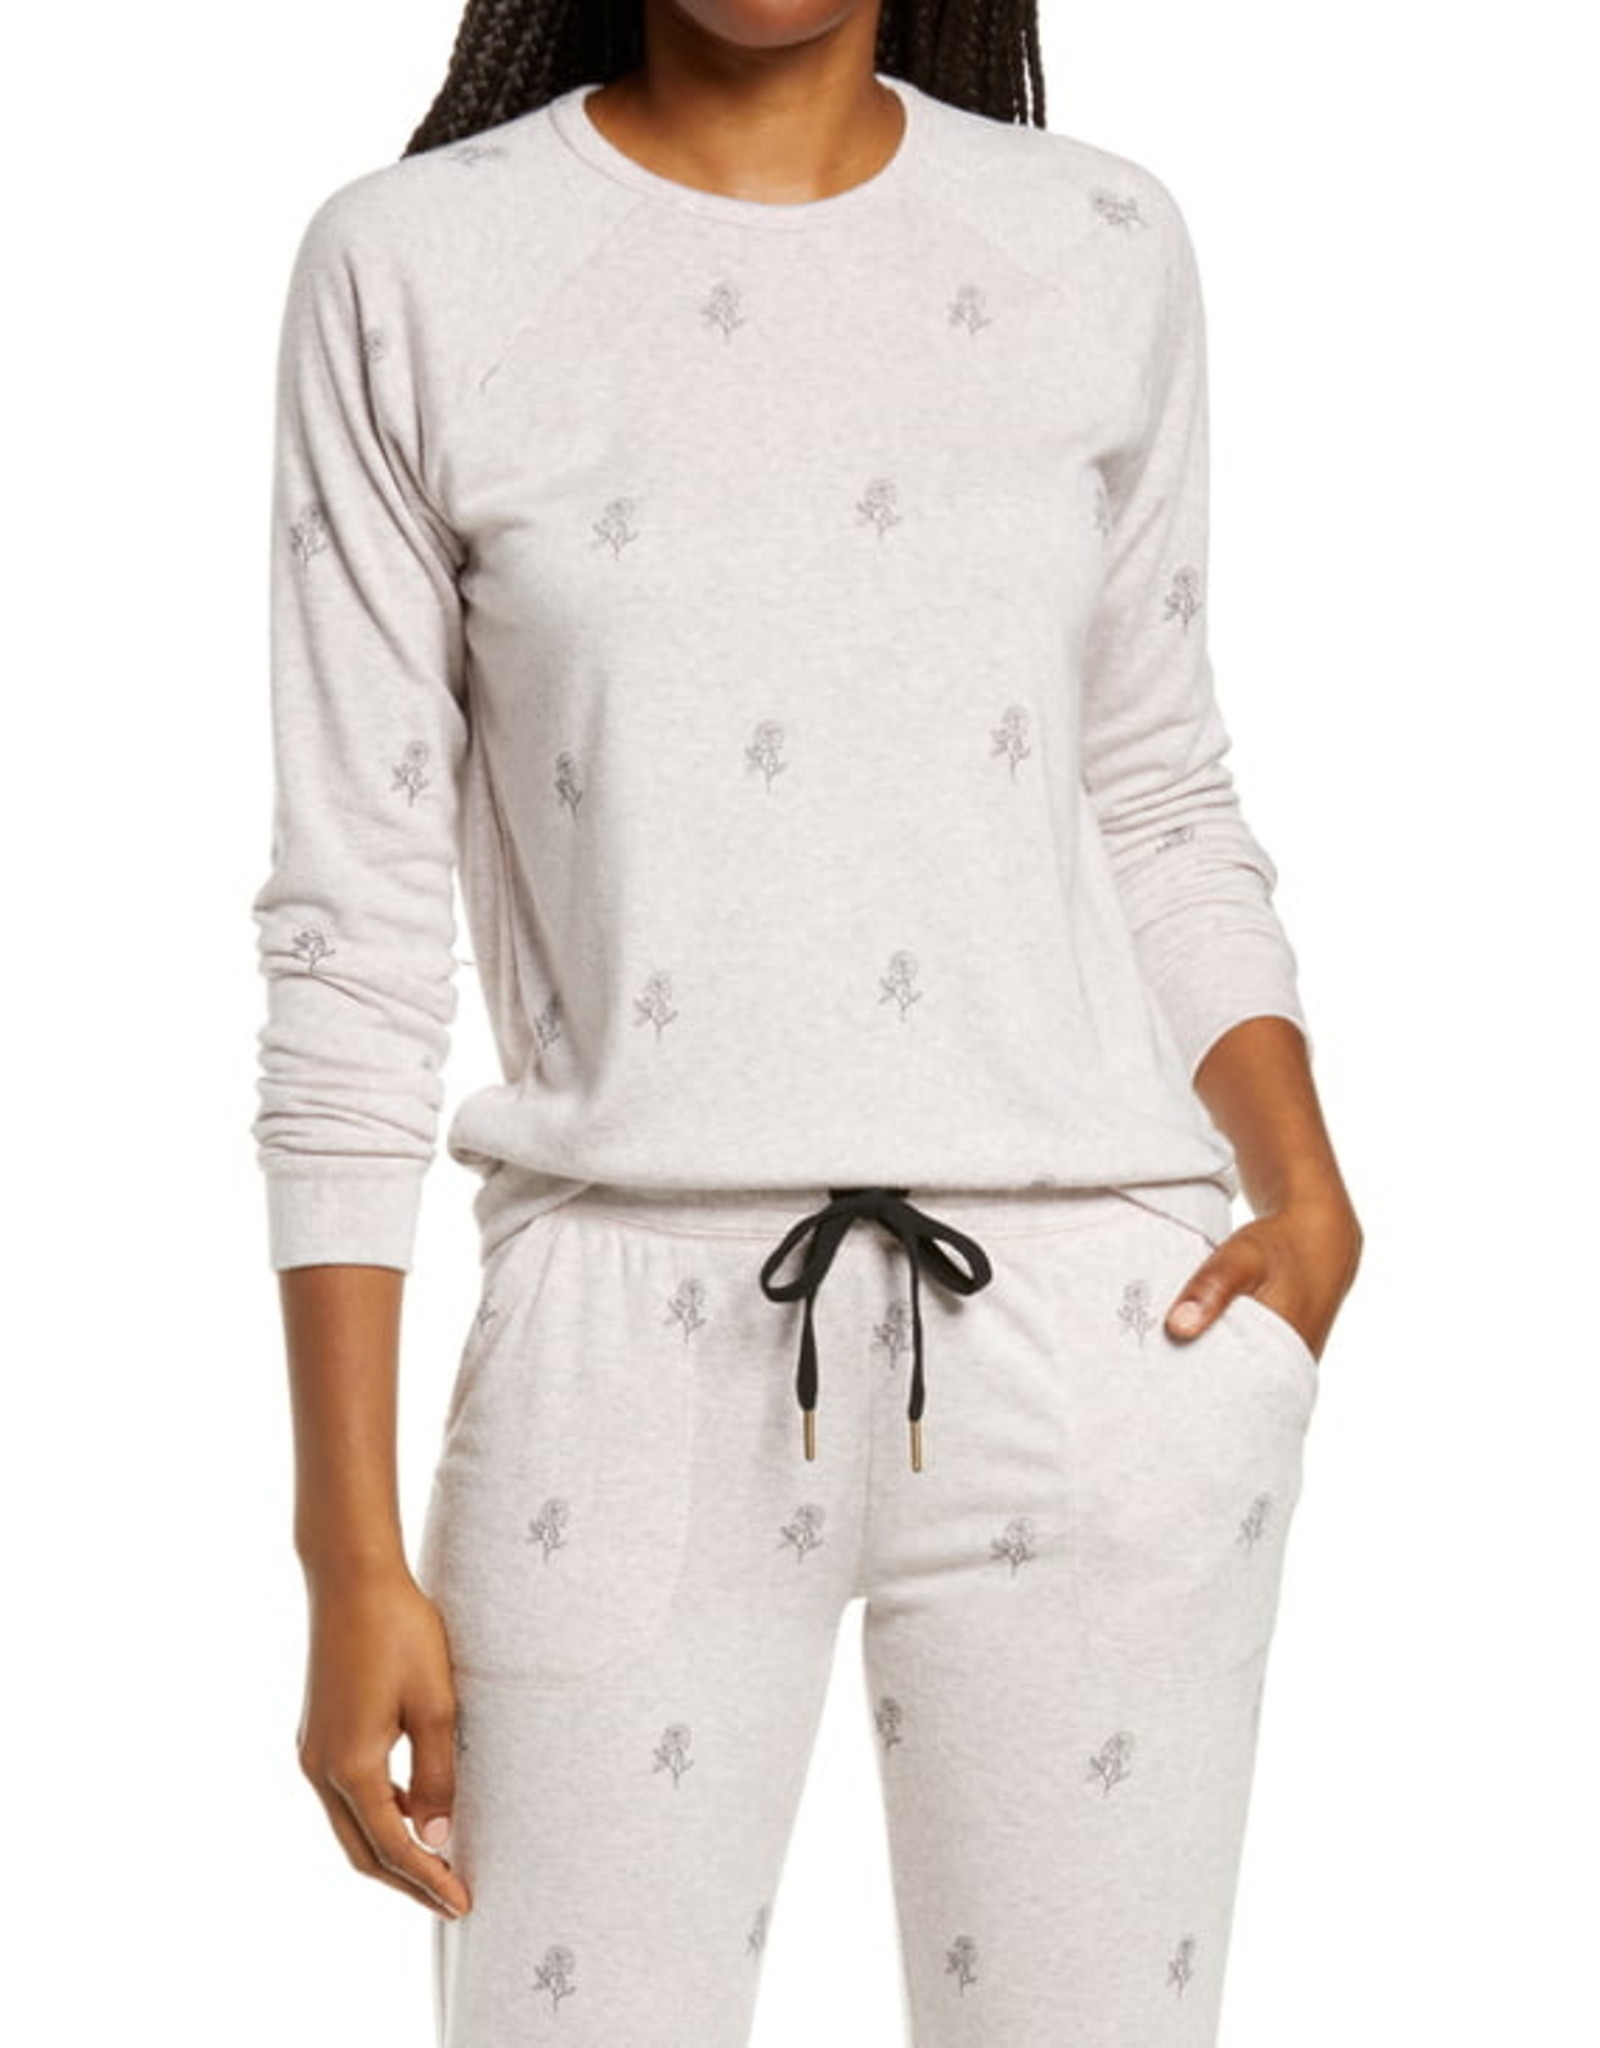 PJ Salvage PJ Salvage Rose Top